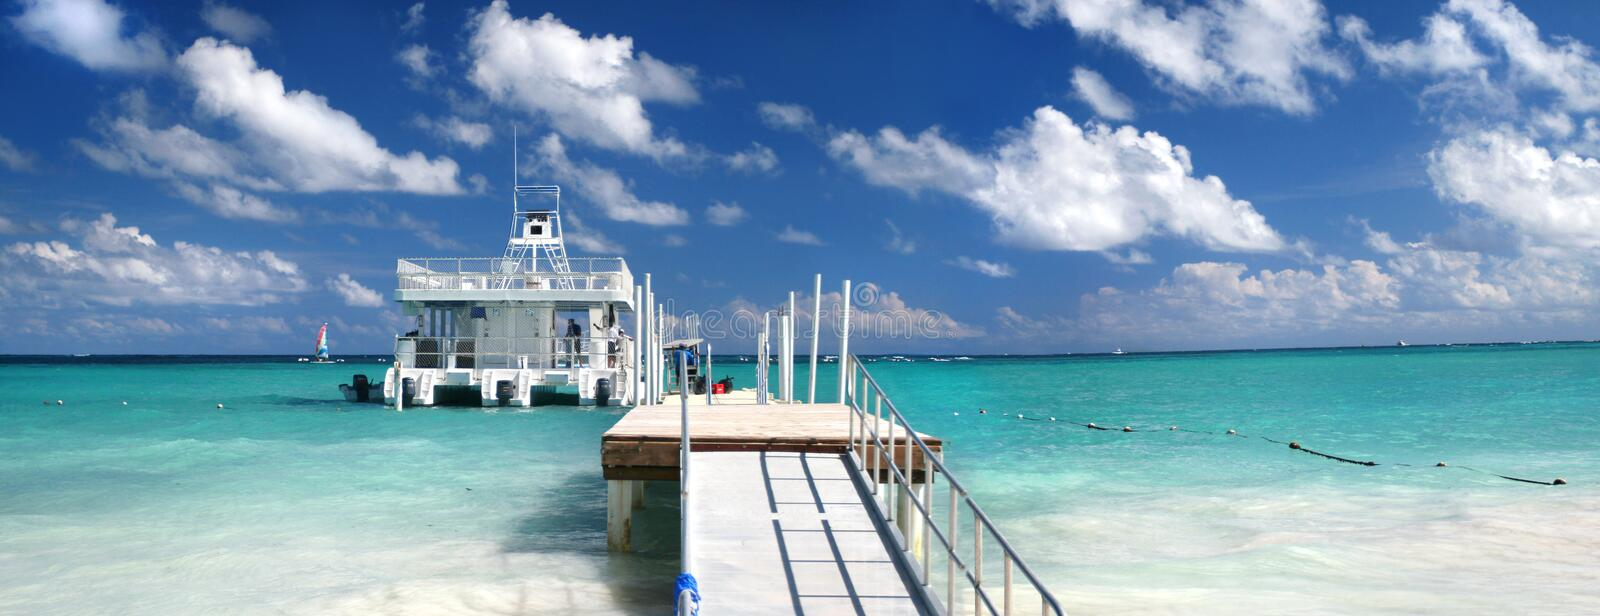 Download Jetty with ferry boat stock image. Image of ocean, pristine - 7990193